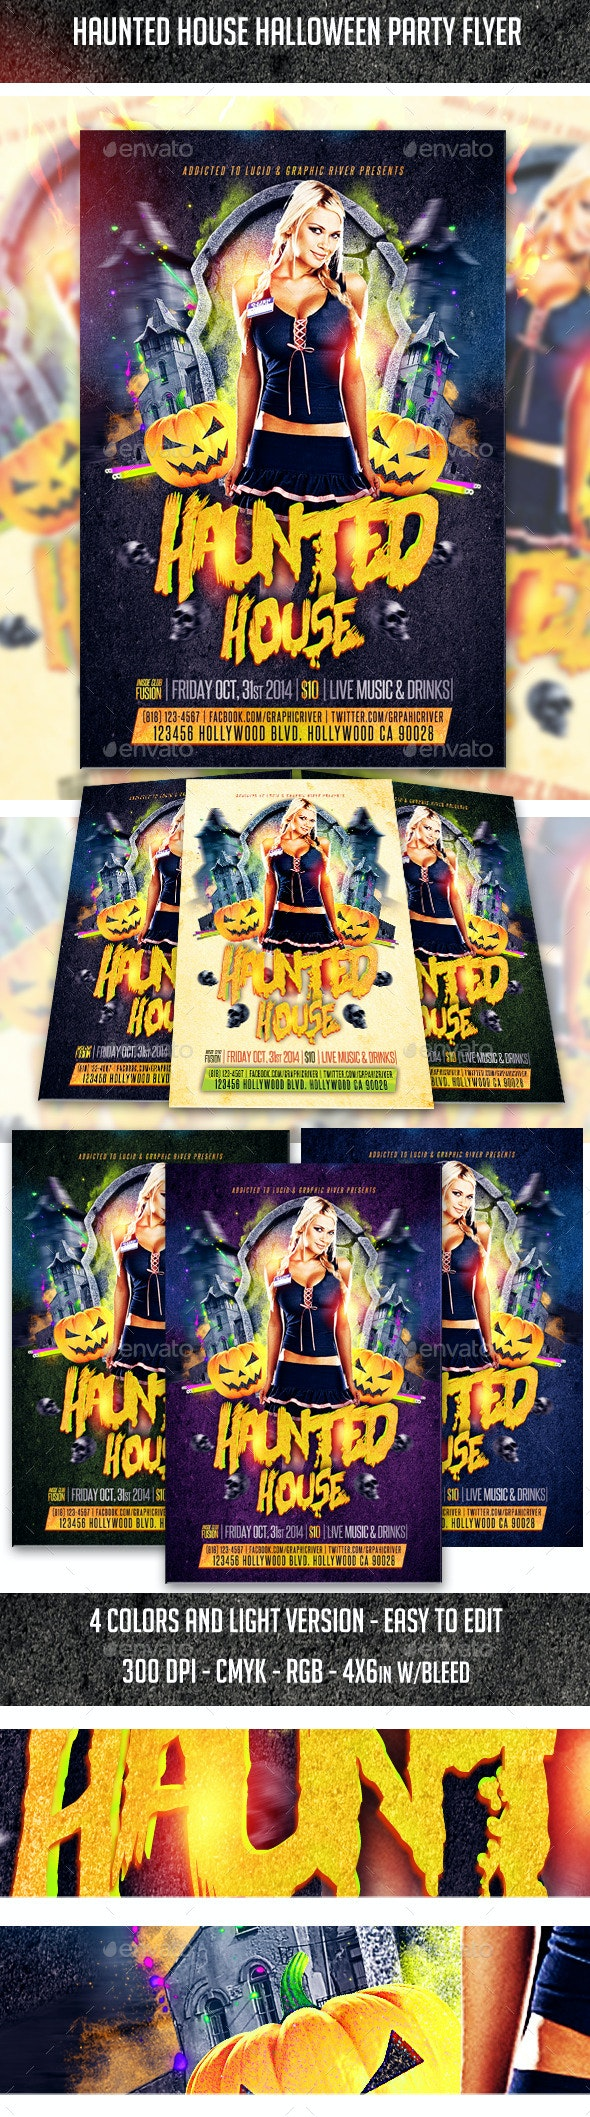 Haunted House Halloween Flyer - Clubs & Parties Events